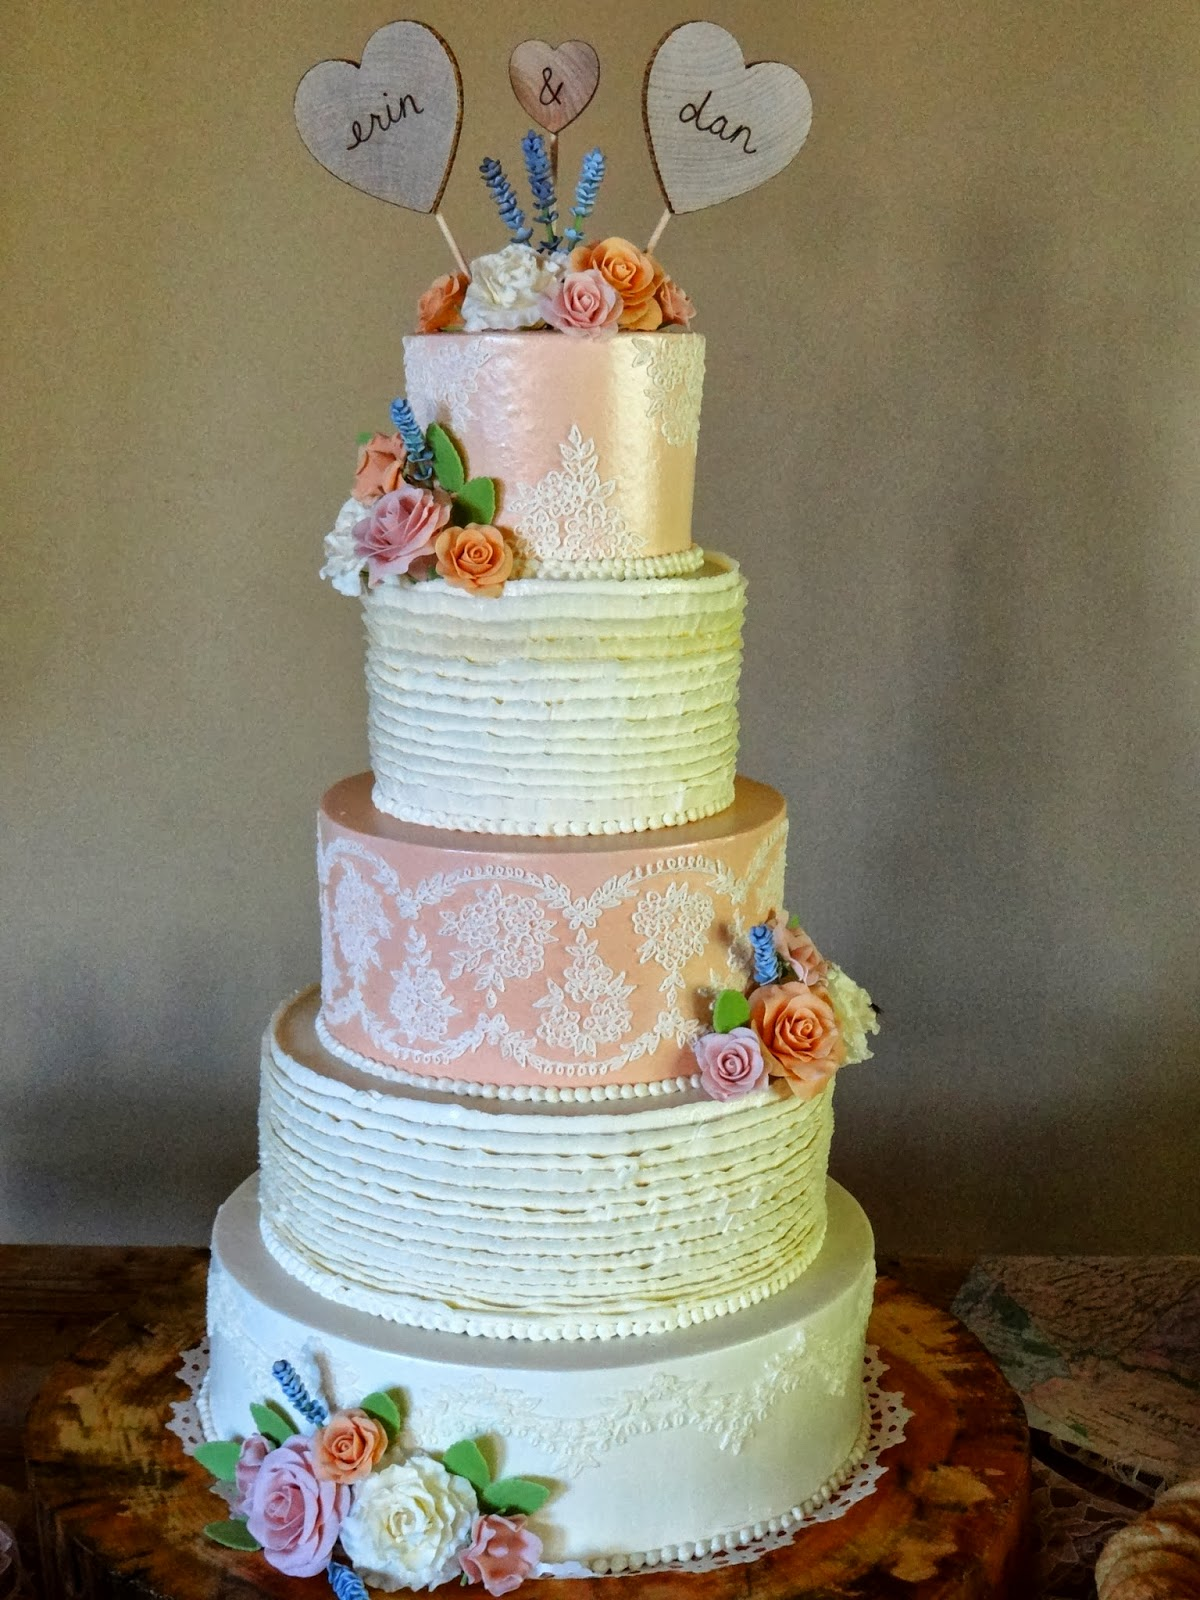 Tiers of Joy Cakery Peach & Ivory Lace Wedding Cake with